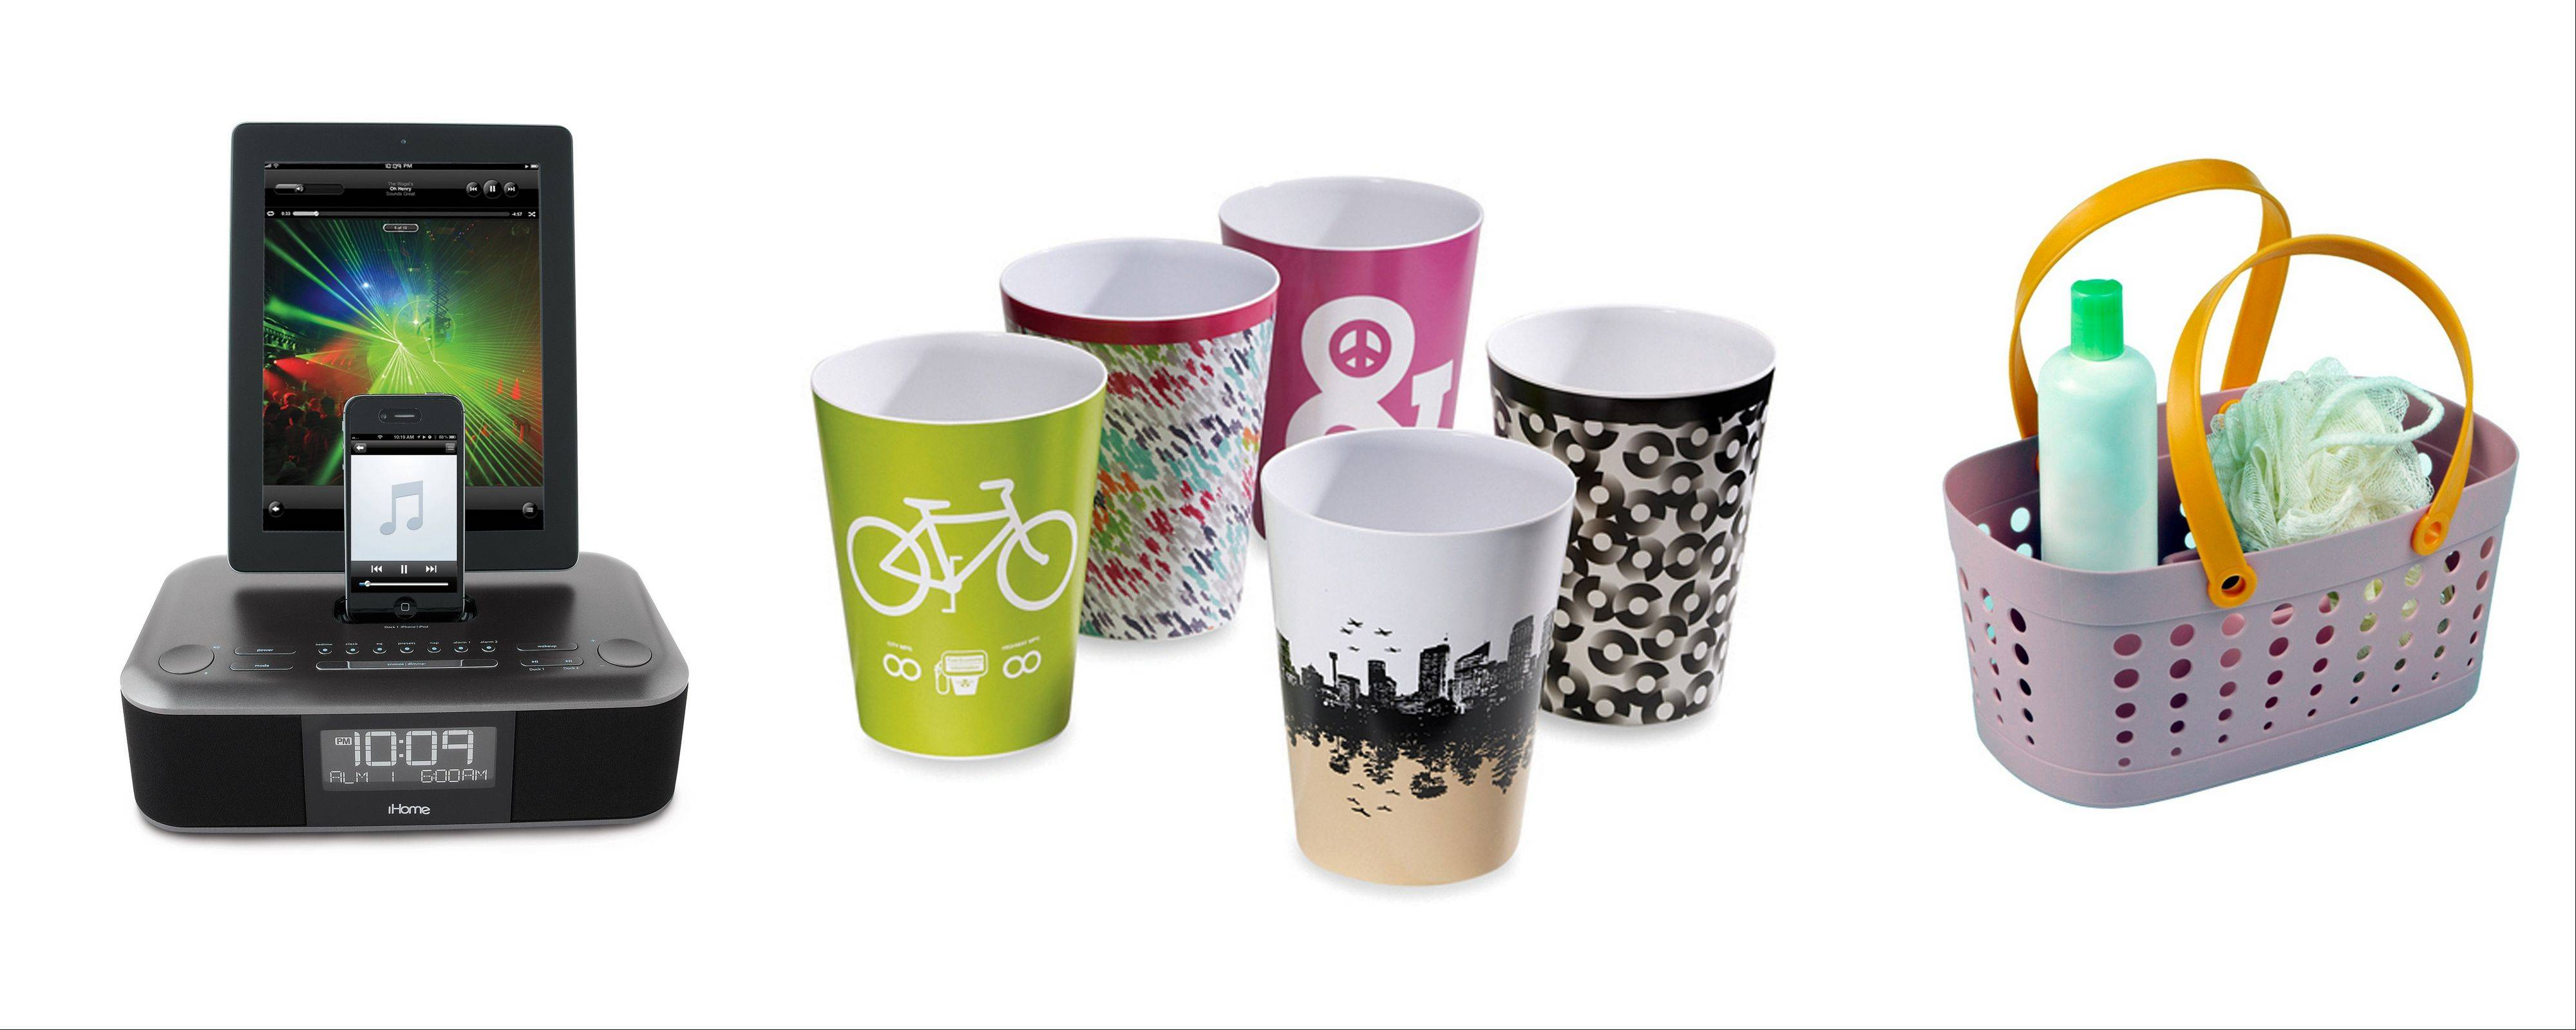 In the iHome app-enhanced triple charge dual alarm, melamine Threadless wastebaskets and colorful cups.